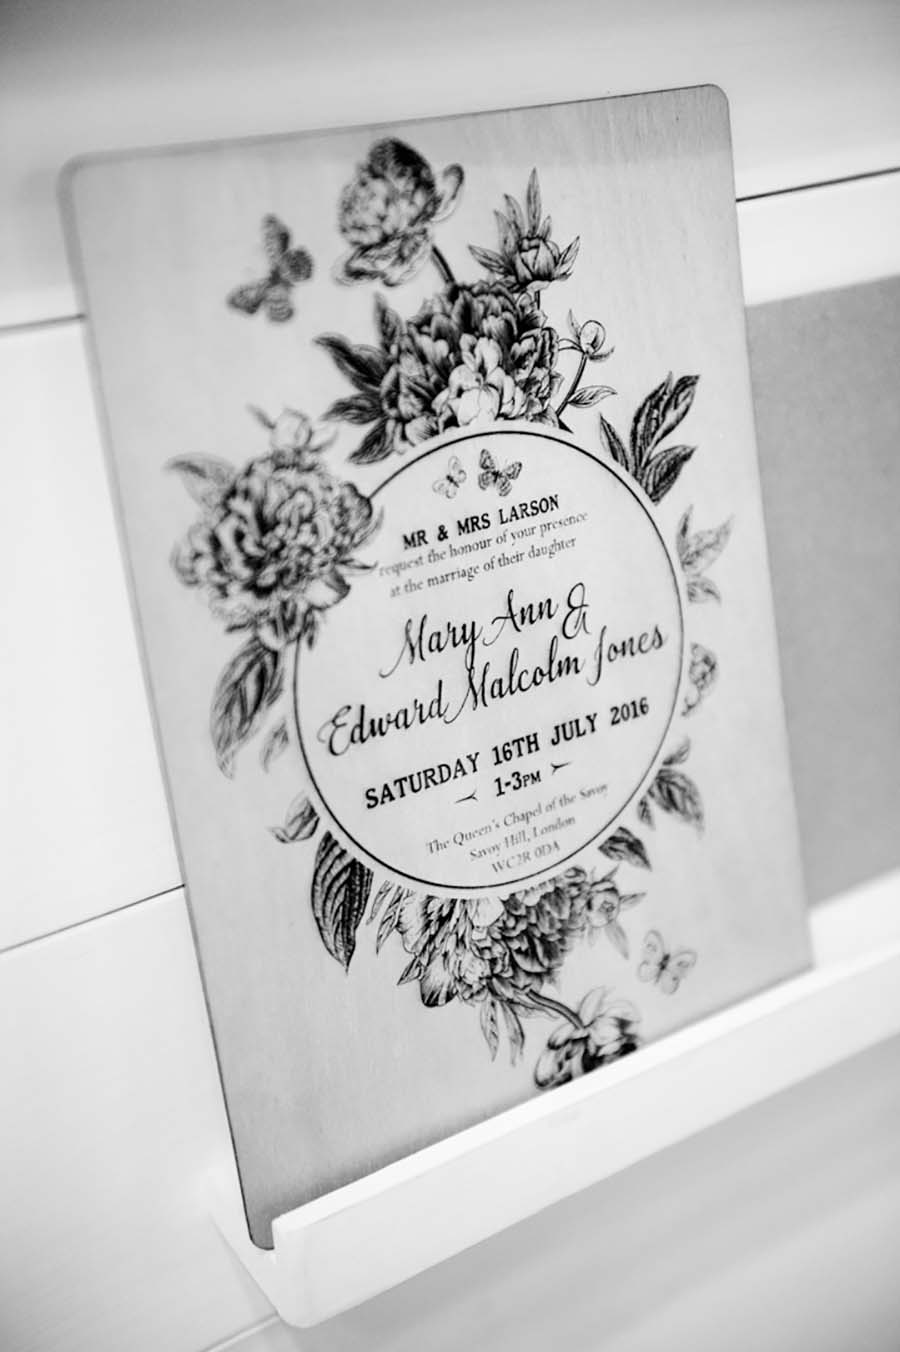 Buckinghams-at-belvoir-castle-wedding-fair-rachael-connerton-photography-114